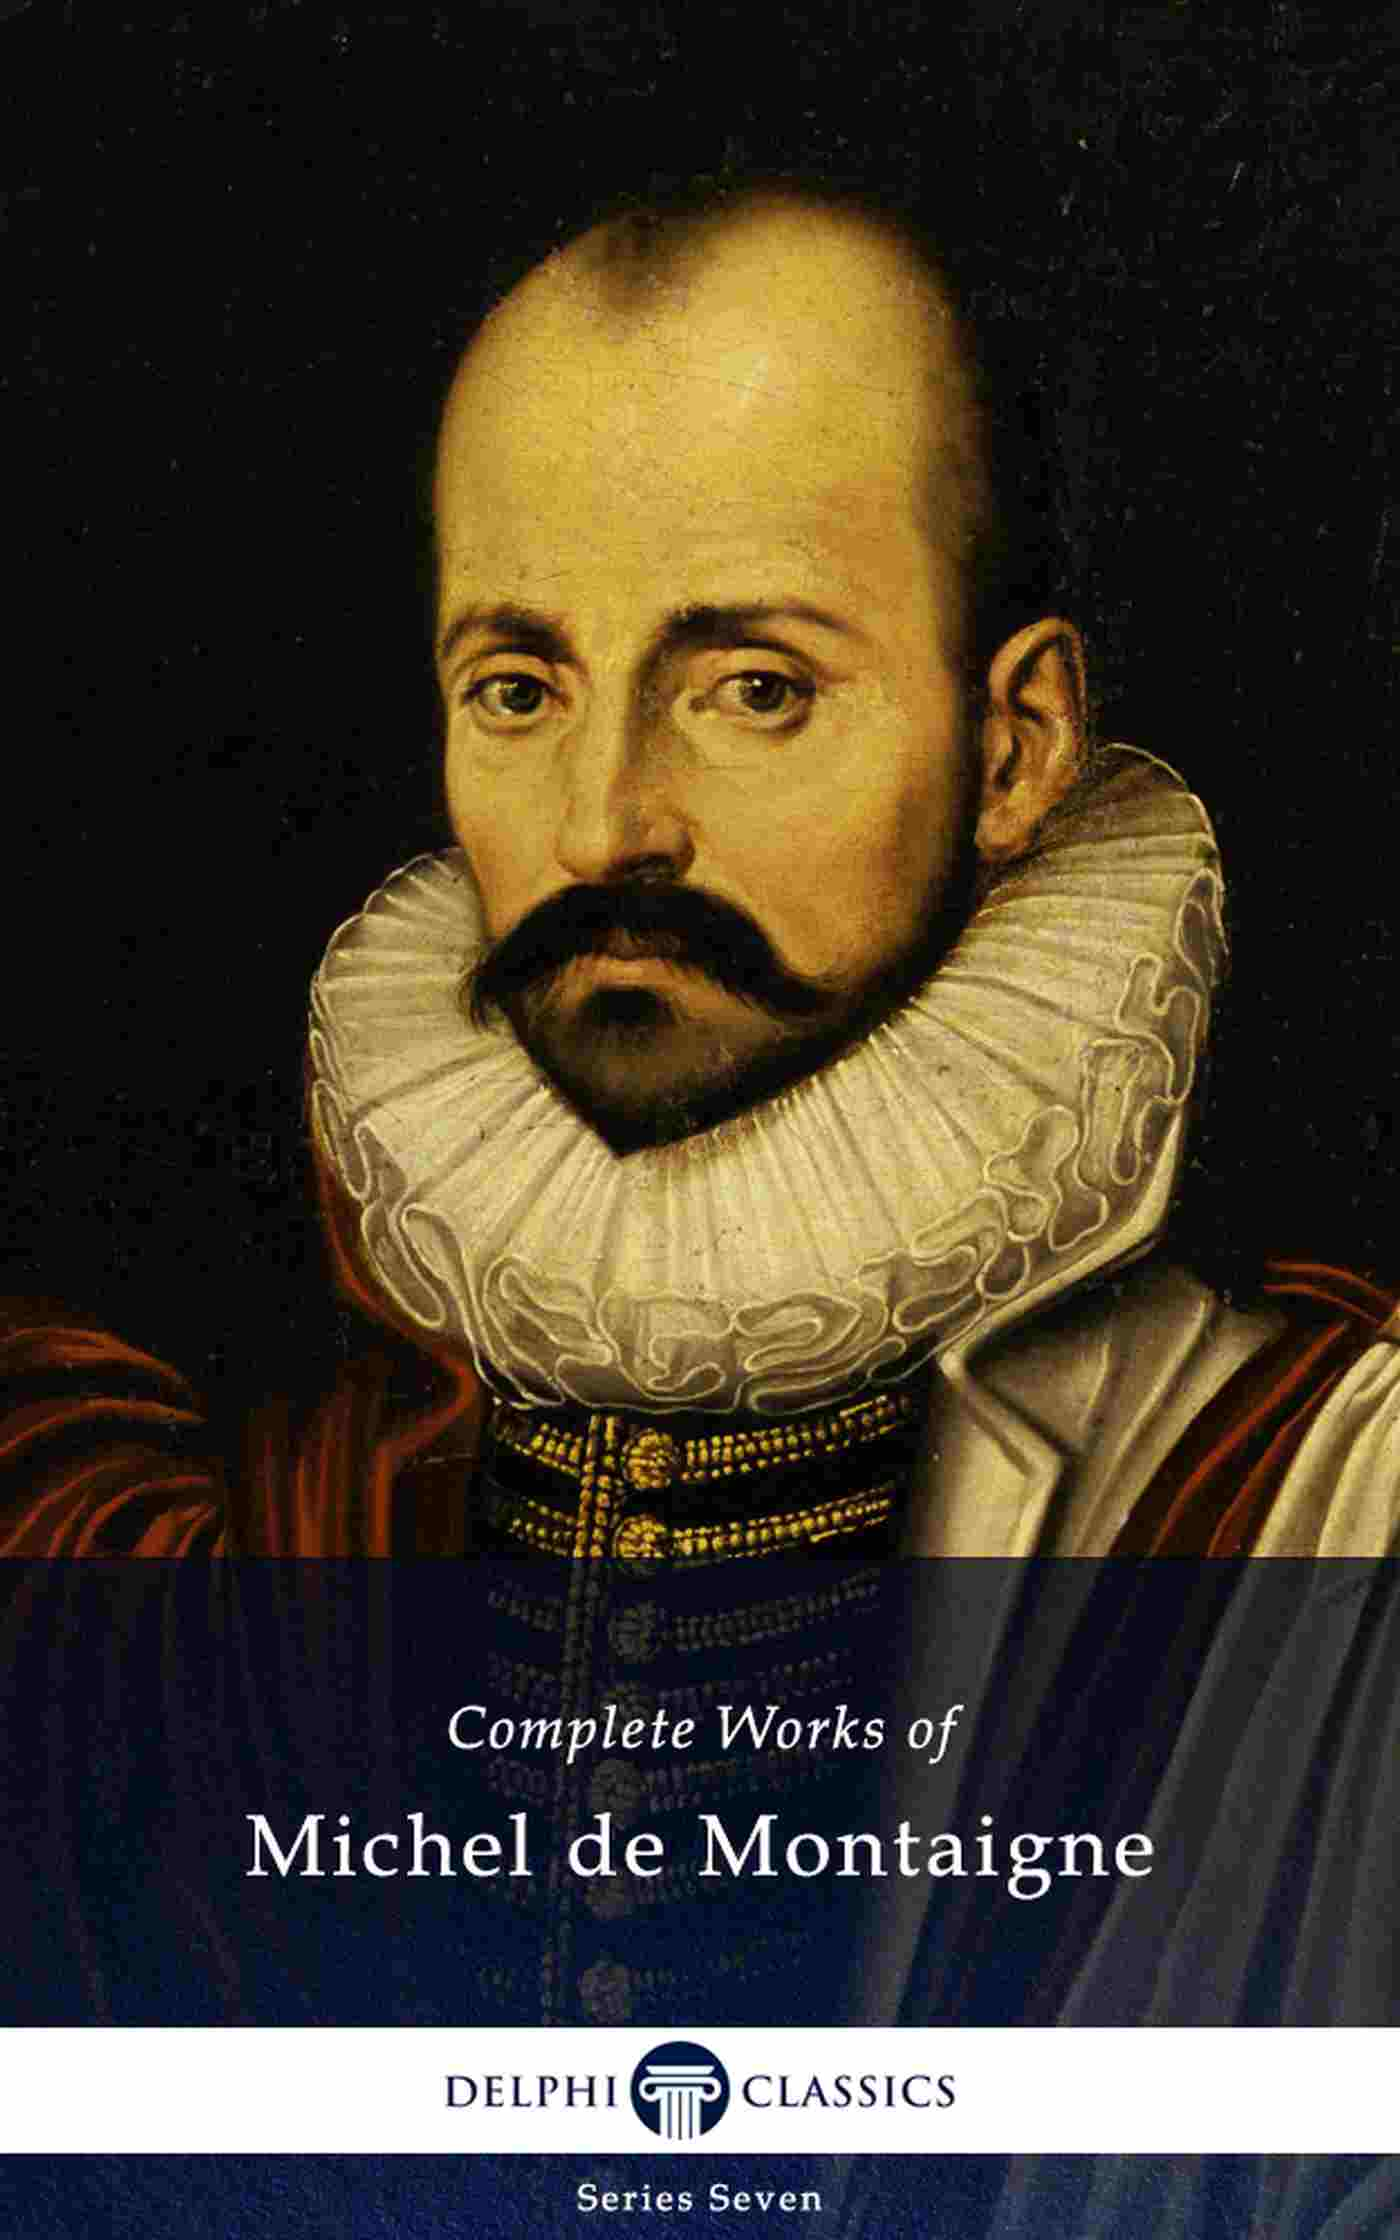 essays of cannibals summary Reflections by the creator of the essay form, display the humane, skeptical, humorous, and honest views of montaigne, revealing his thoughts on sexuality, religion, cannibals, intellectuals, and other unexpected themes included are such celebrated works as on solitude, to philosophize is to learn how to die,  and on.